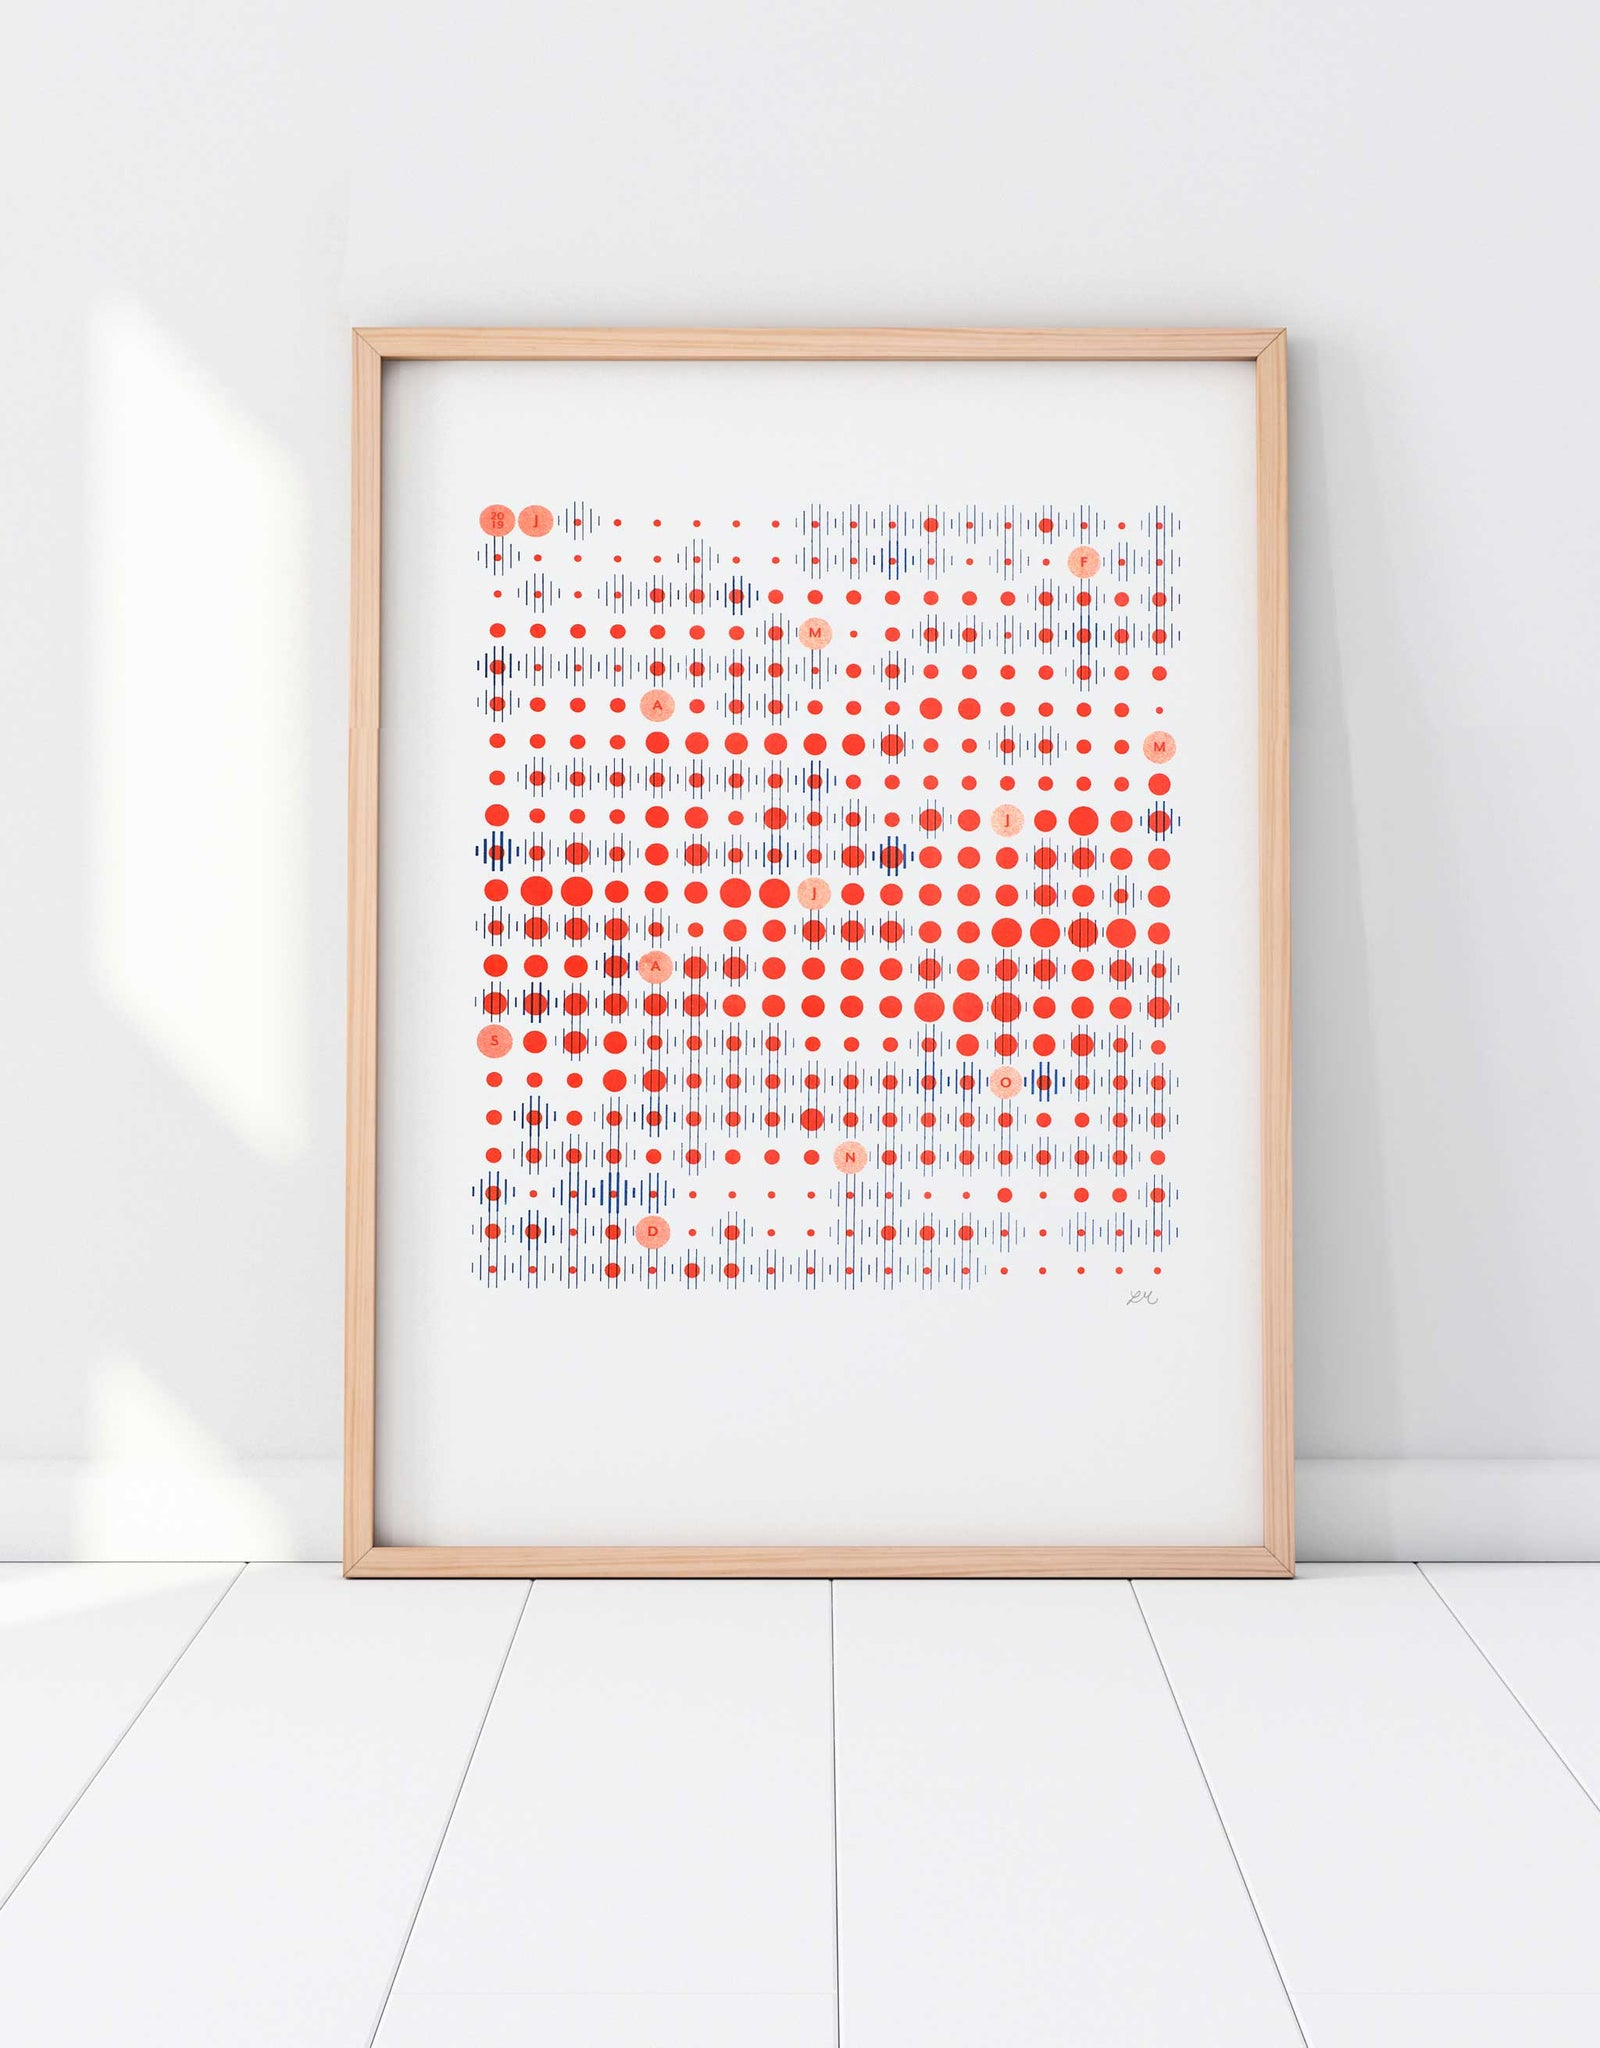 Framed A3 riso data print poster of Amsterdam weather in blue and red grid pattern